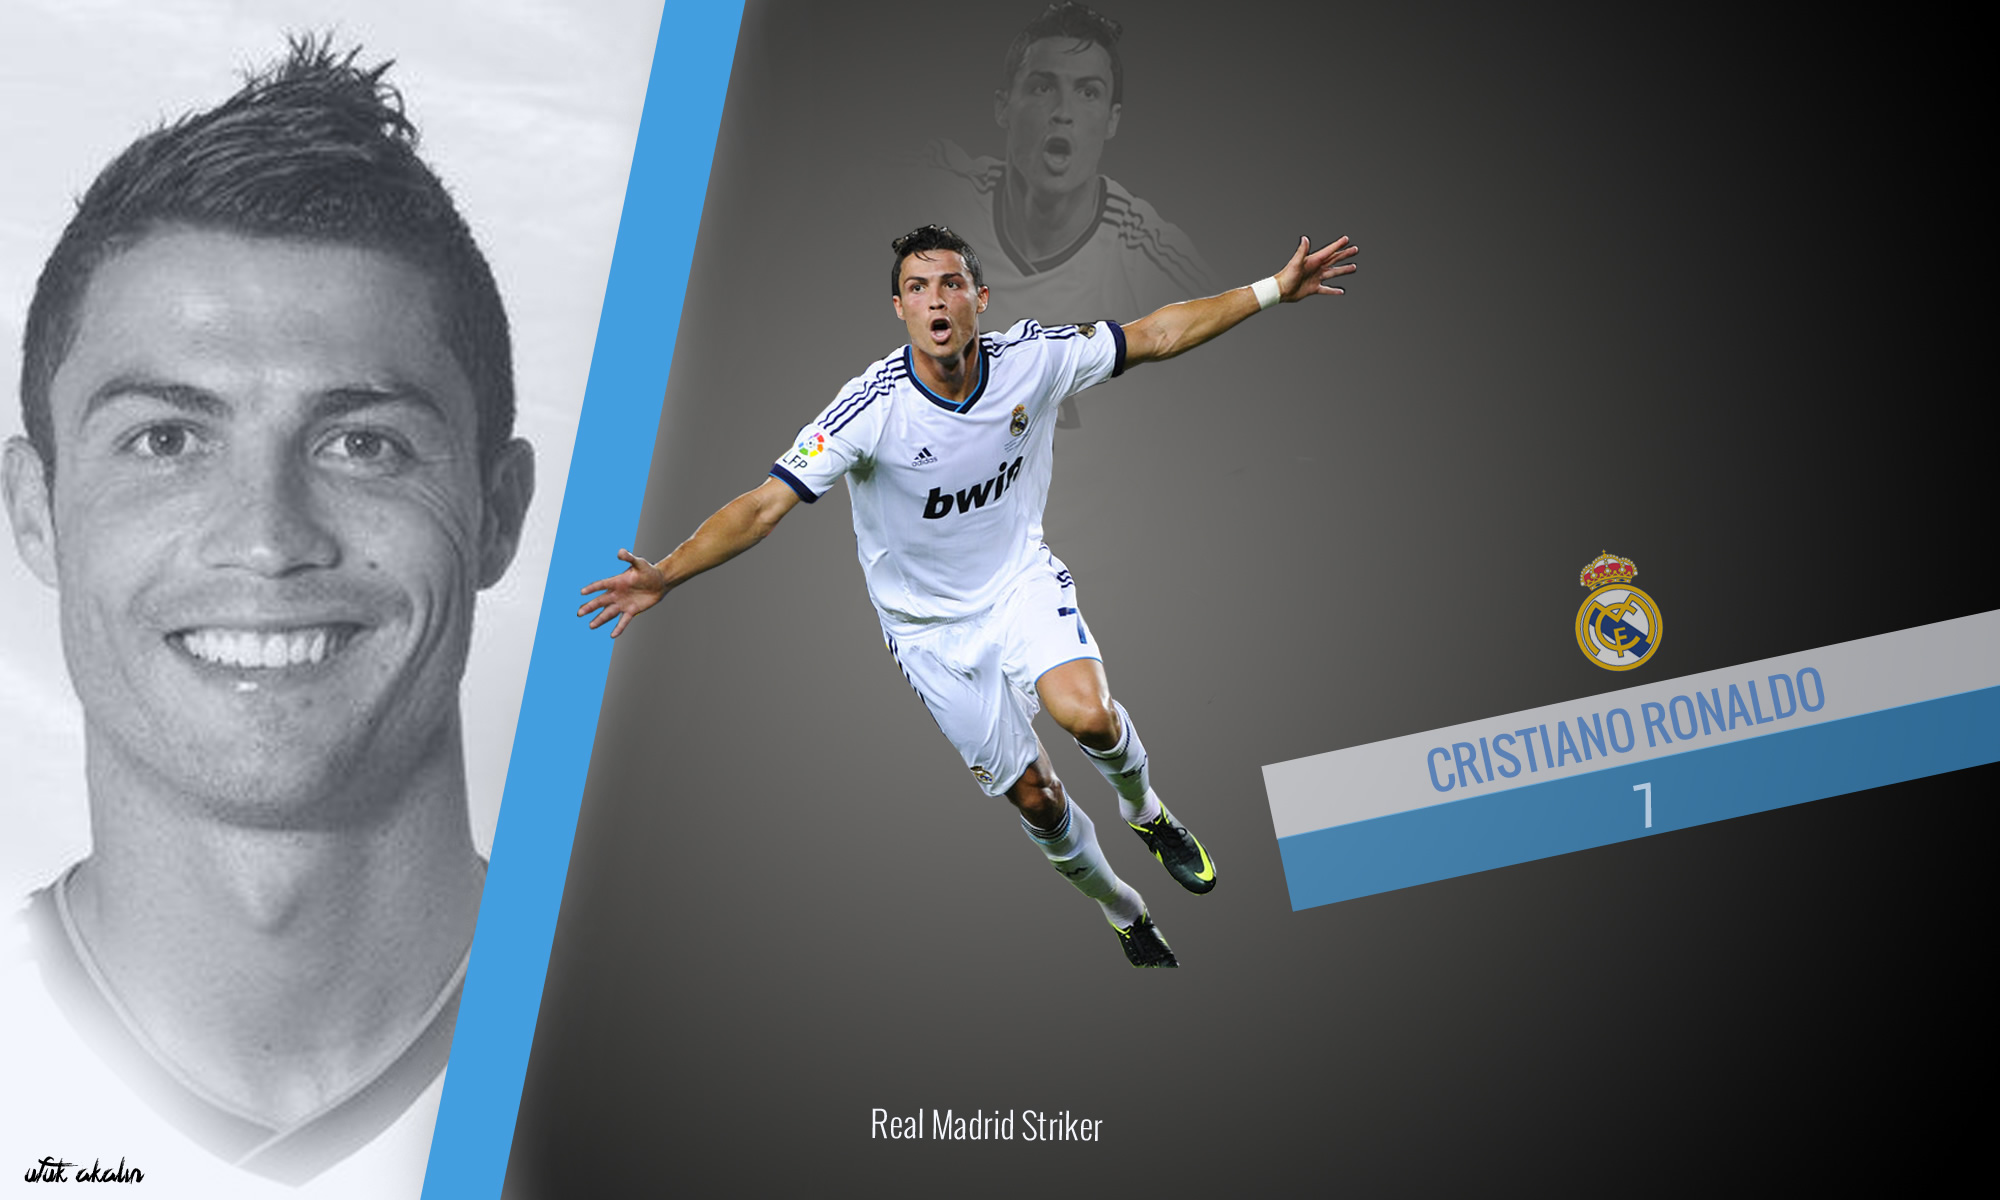 Cristiano Ronaldo wallpaper by Ufuuk